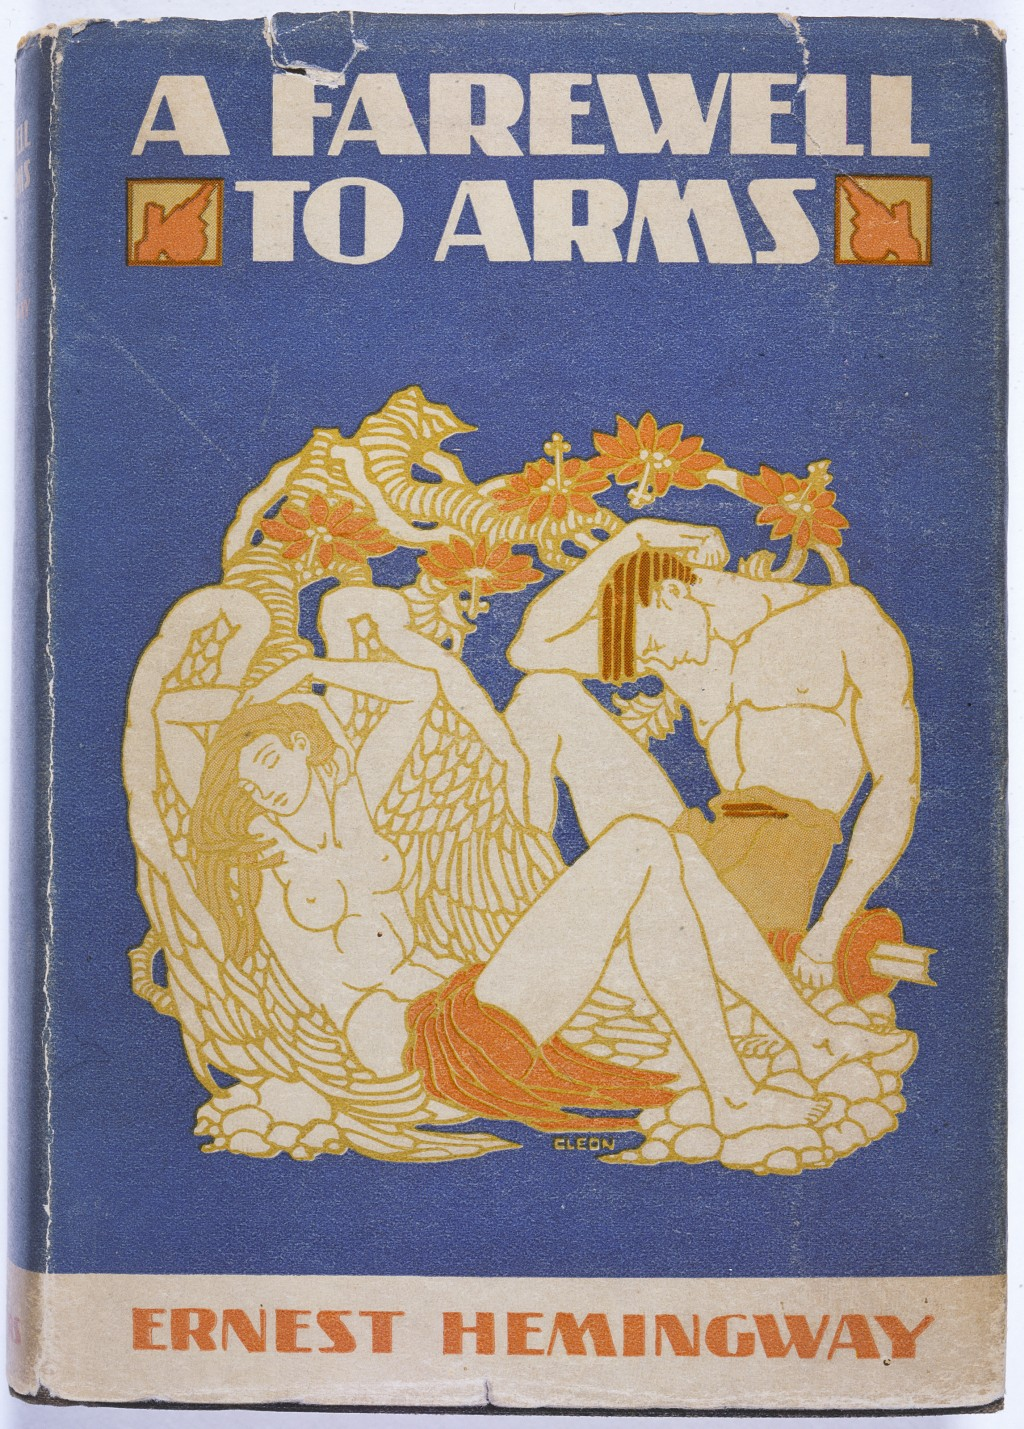 Ernest Hemingway: A Farewell to Arms, 1929 cover. [LCID: heming]